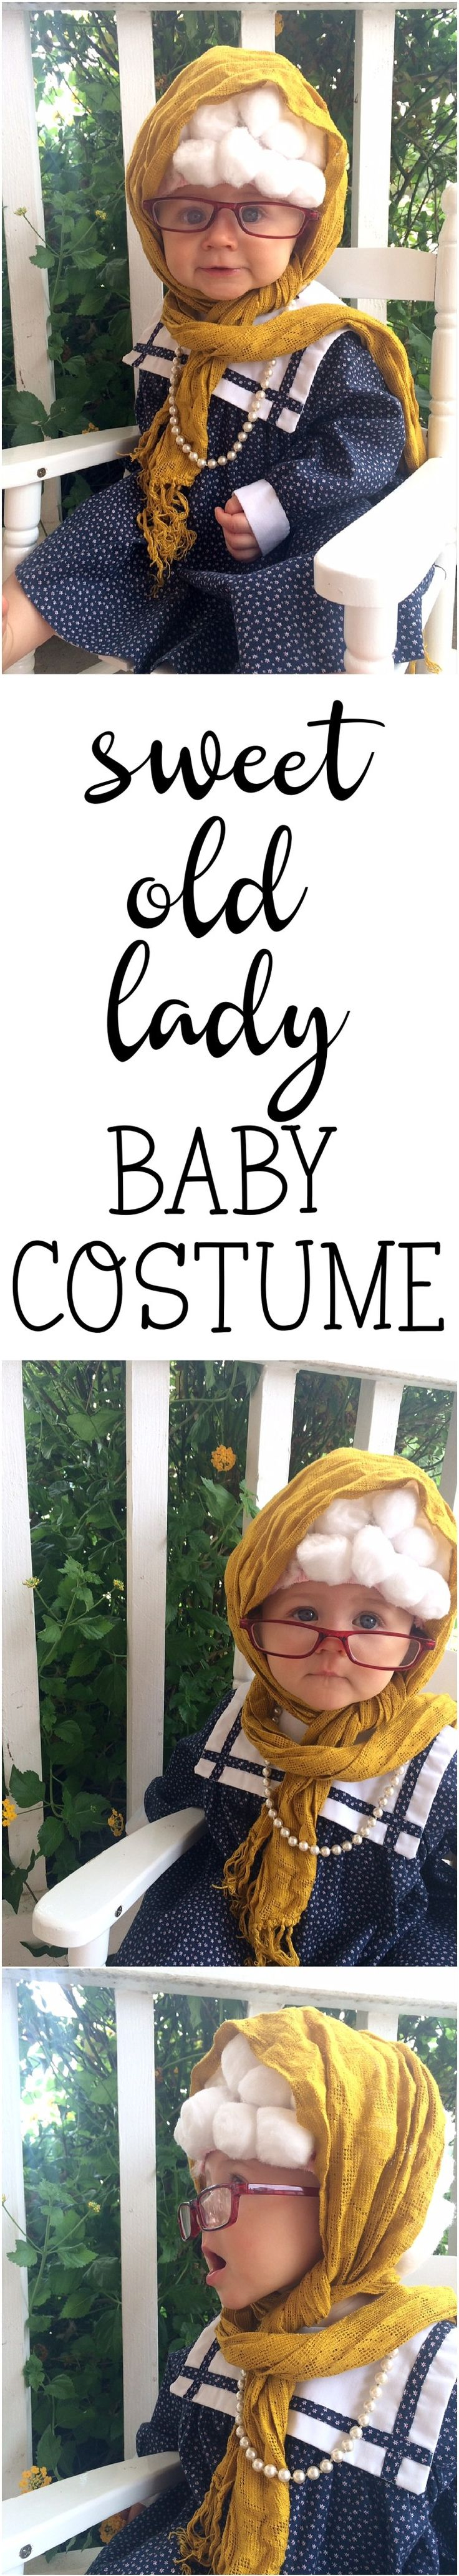 Old Lady Baby Costume | Old Lady Costume for Kids | Halloween Baby Costume | Easy Baby Costume Ideas | Halloween Cpostume Ideas